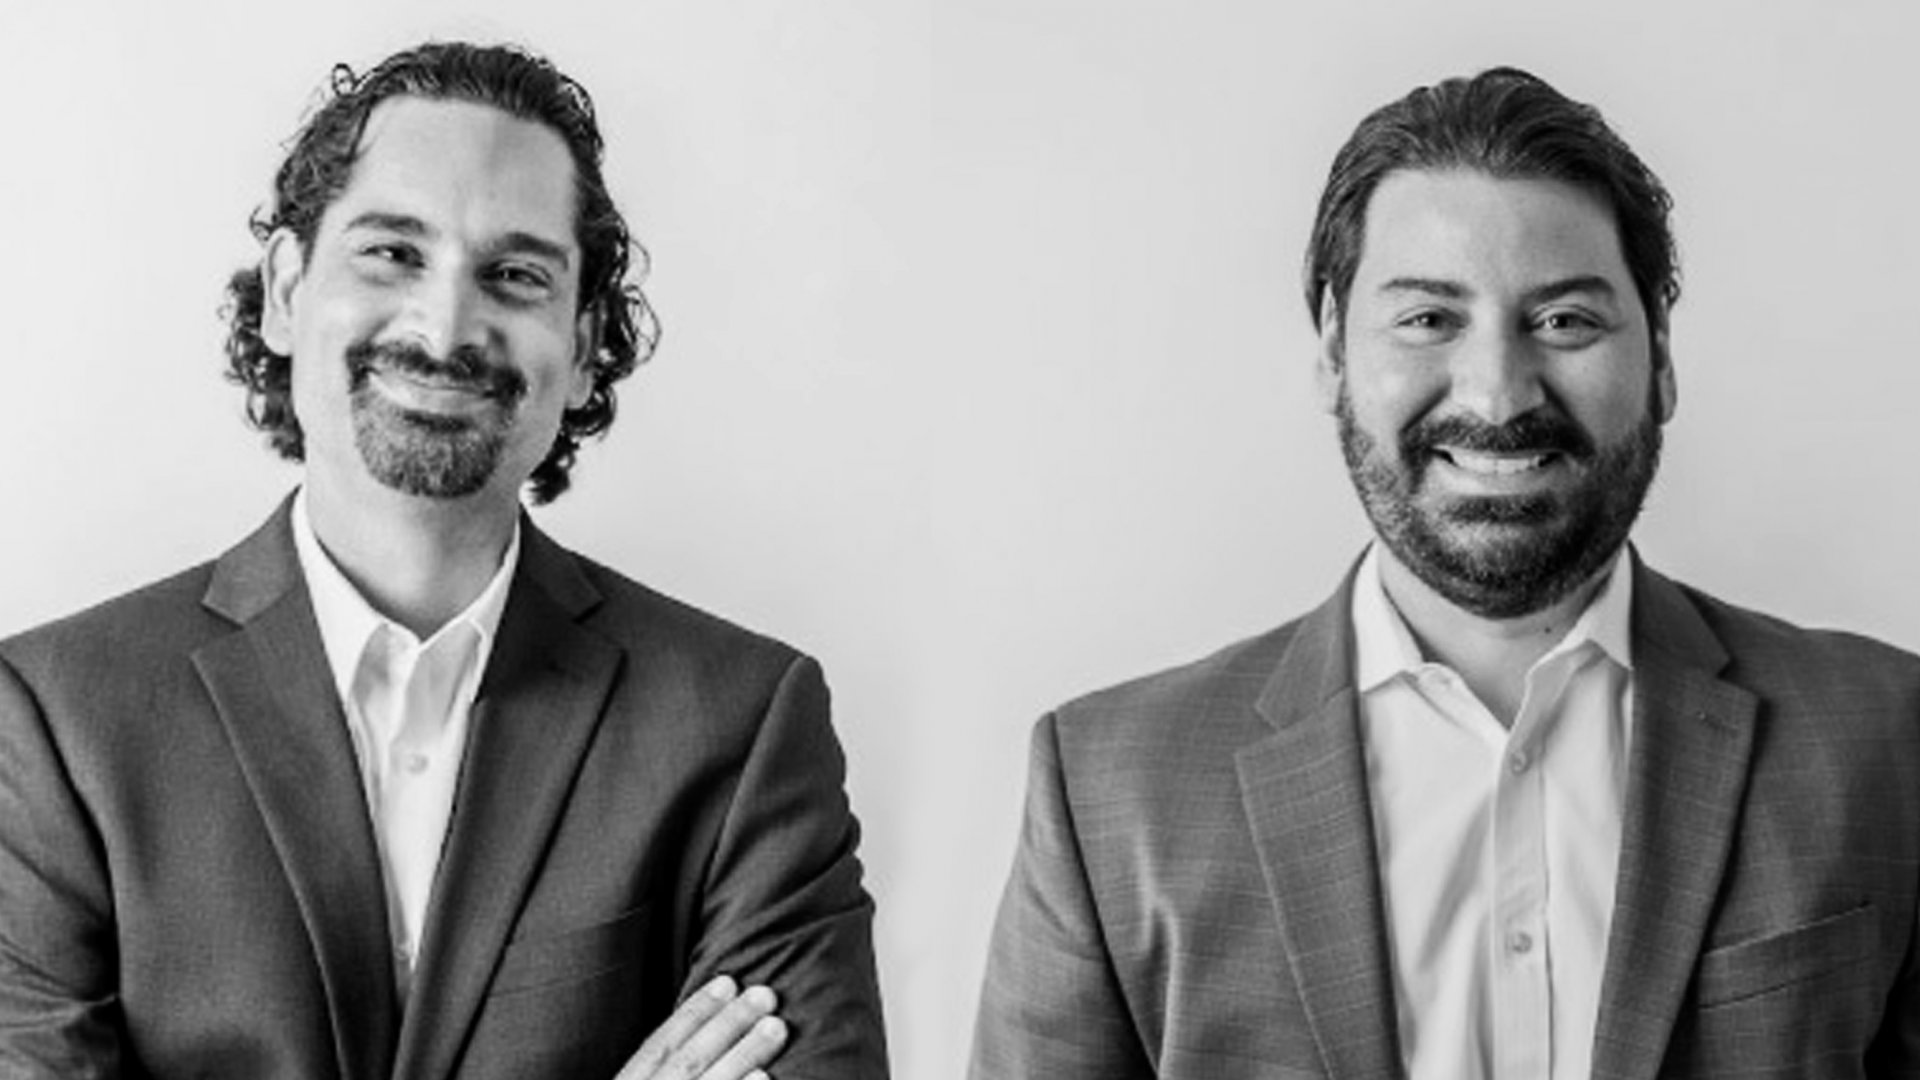 Wovenware co-founders Carlos Melendez and Christian Gonzalez.